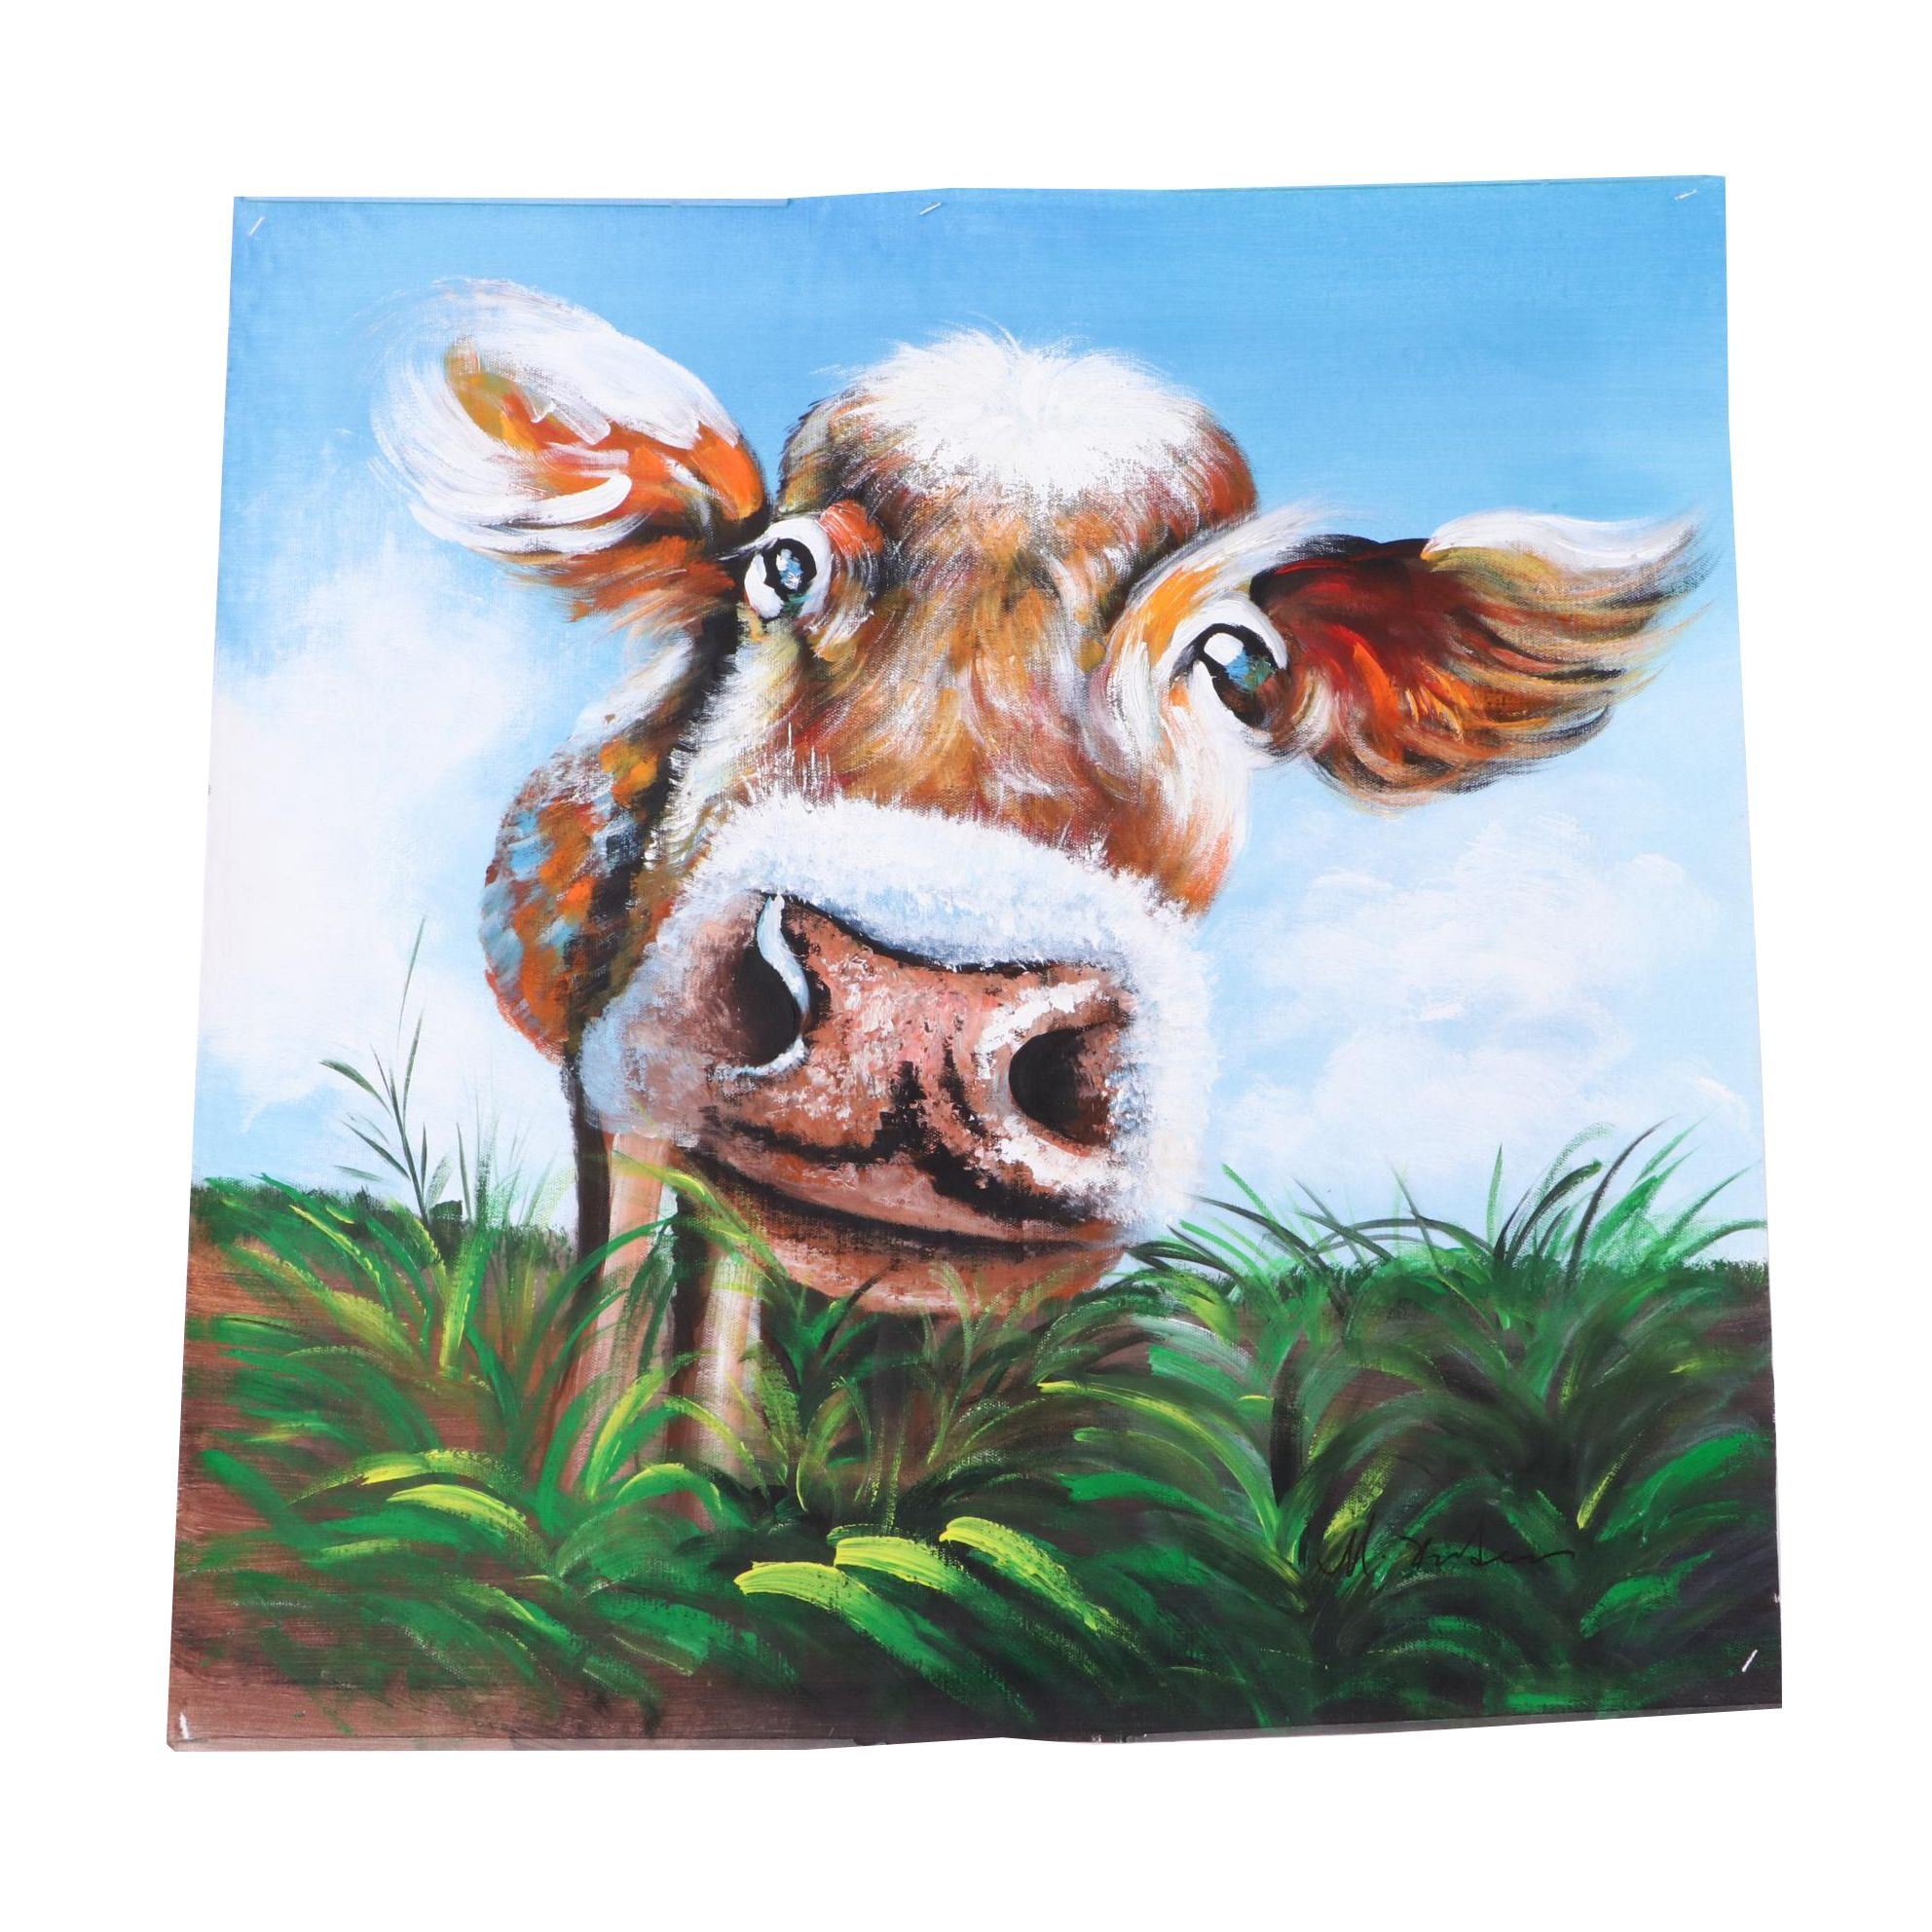 Mixed Media Painting of a Cow